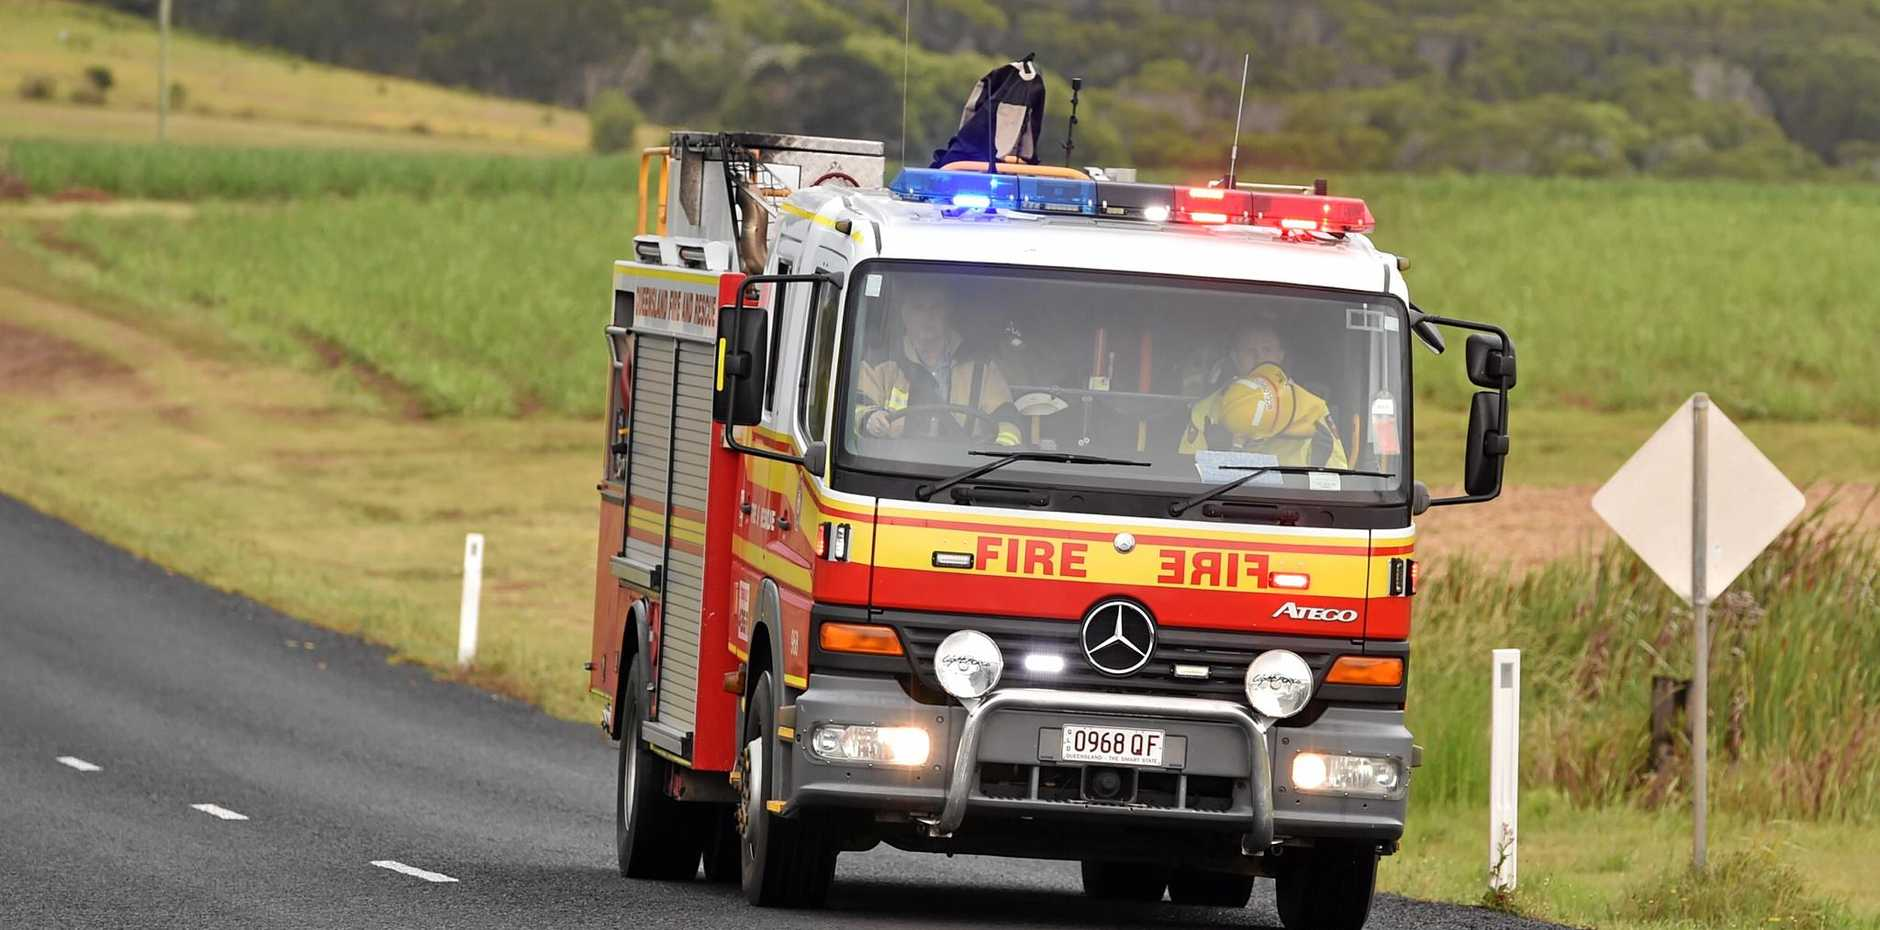 Queensland Fire and Rescue issued call out fees for more than 10,000 jobs last year.